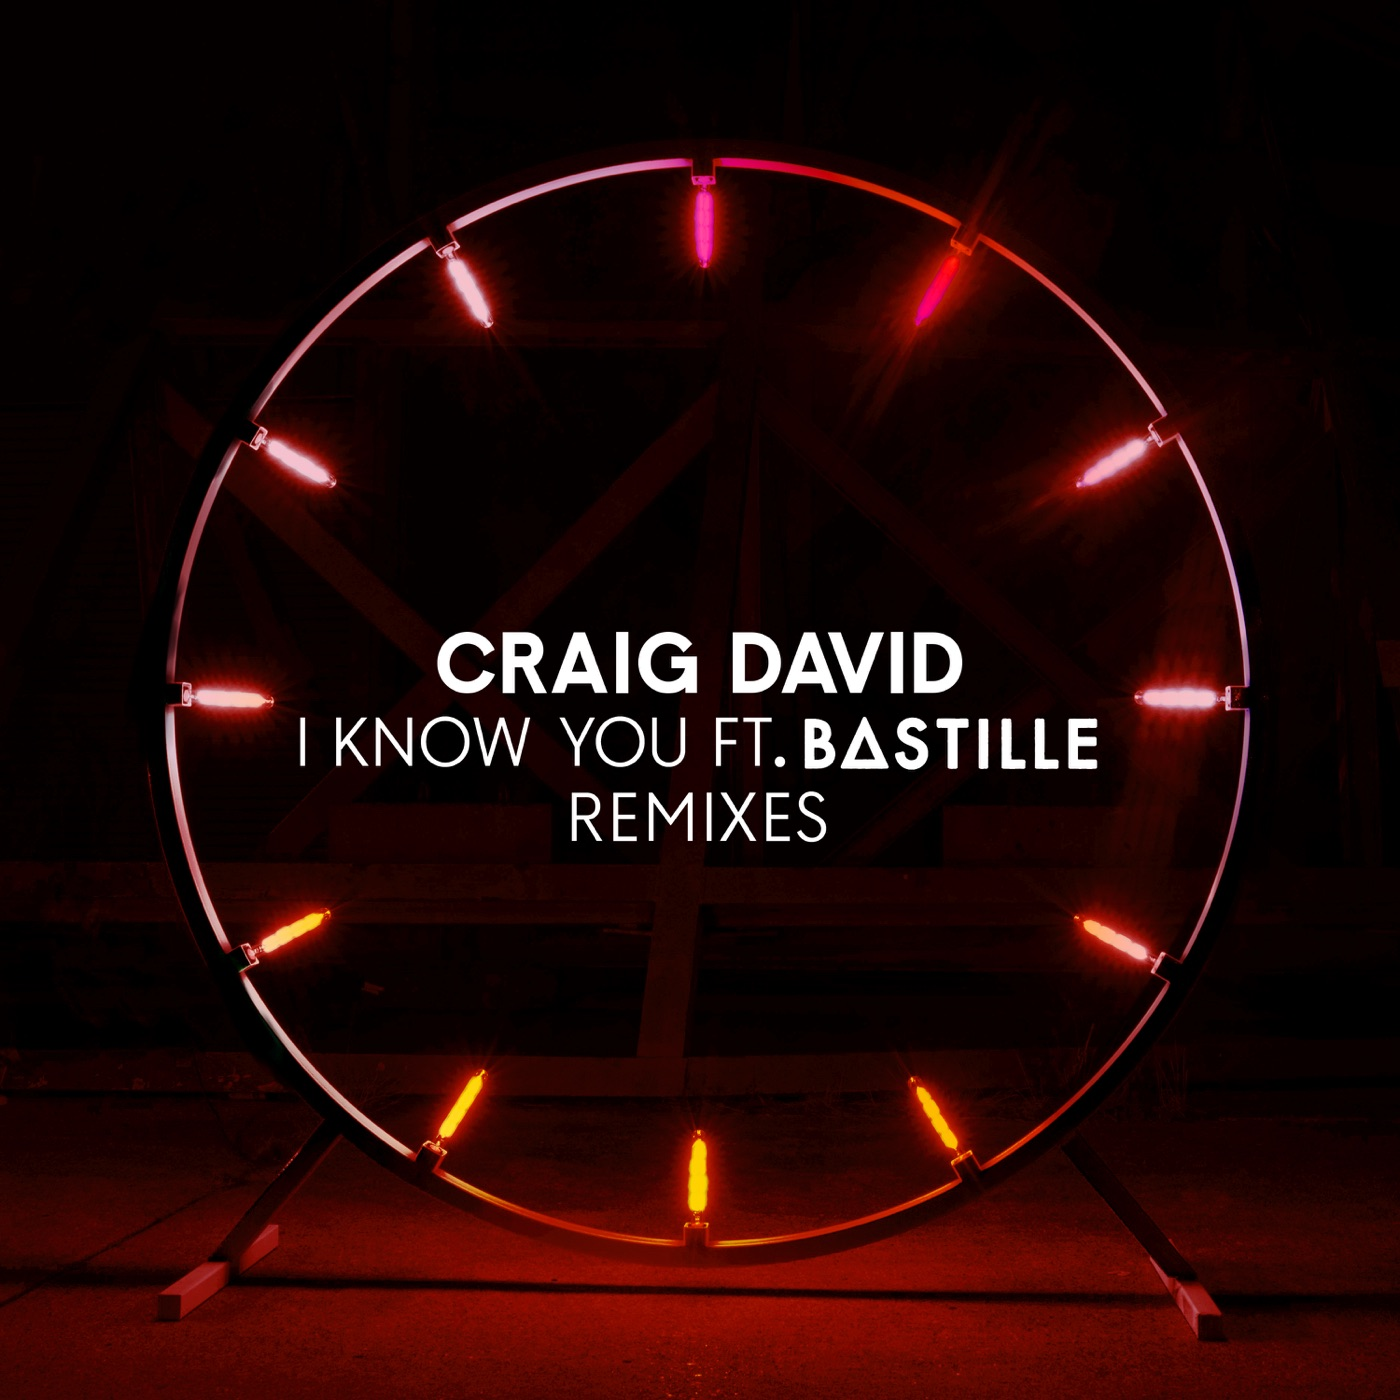 Craig David - I Know You (feat. Bastille) [Remixes] - EP Cover